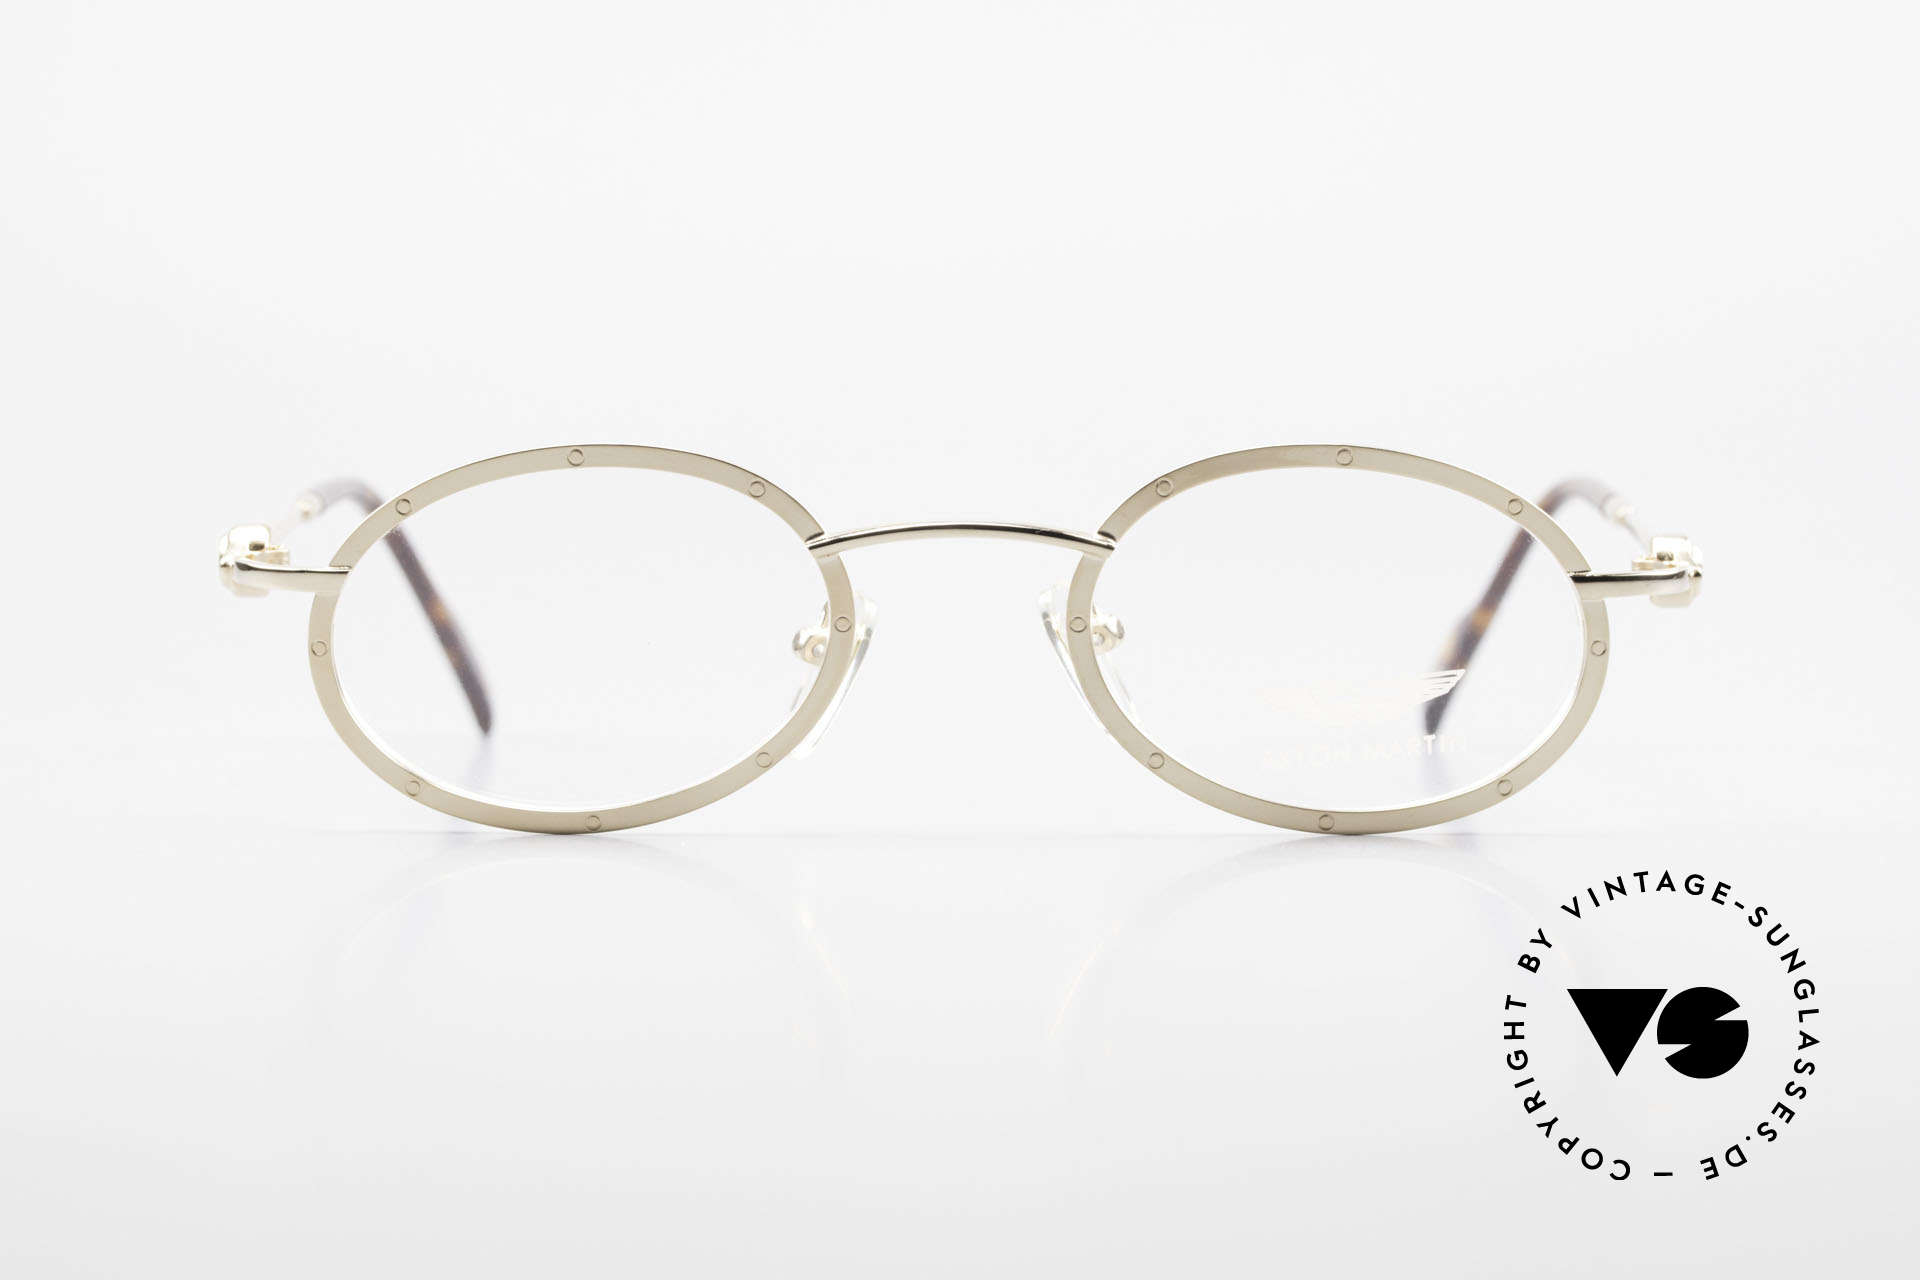 Aston Martin AM34 Oval James Bond Glasses 007, accessory for the luxury British sports cars; just noble!, Made for Men